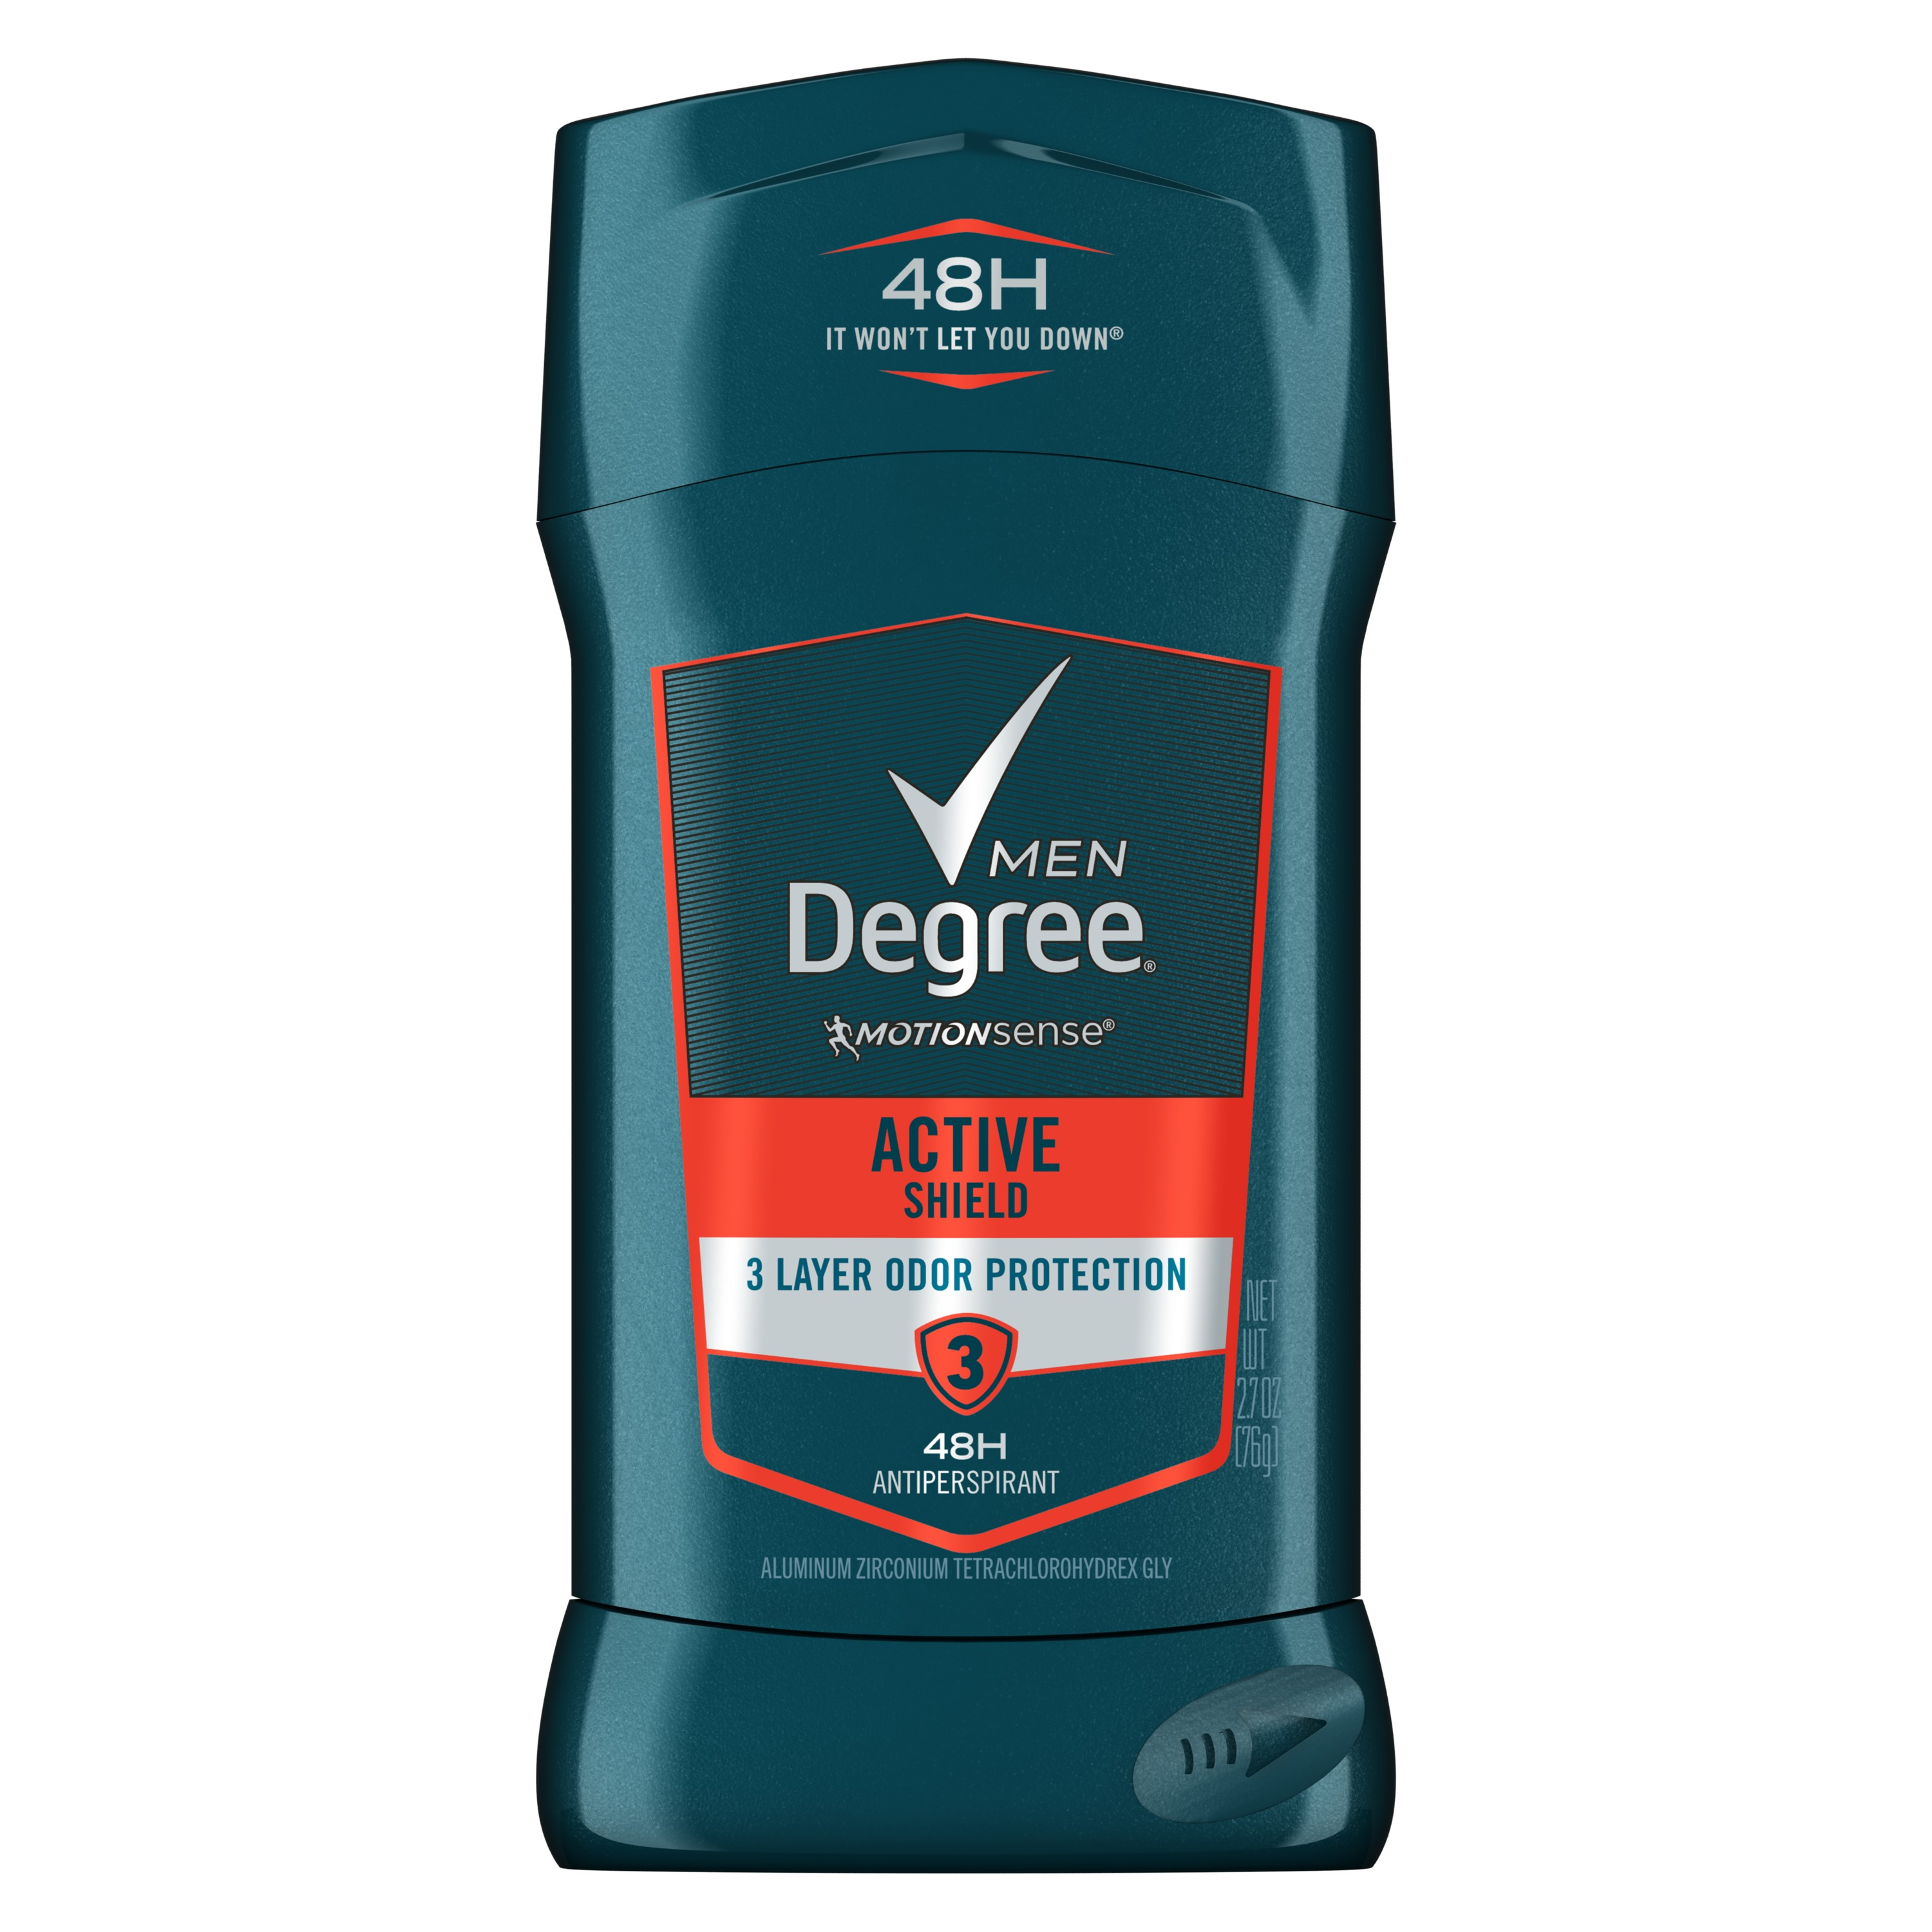 Degree Men Advanced Protection Active Shield Antiperspirant Deodorant, 2.7 oz